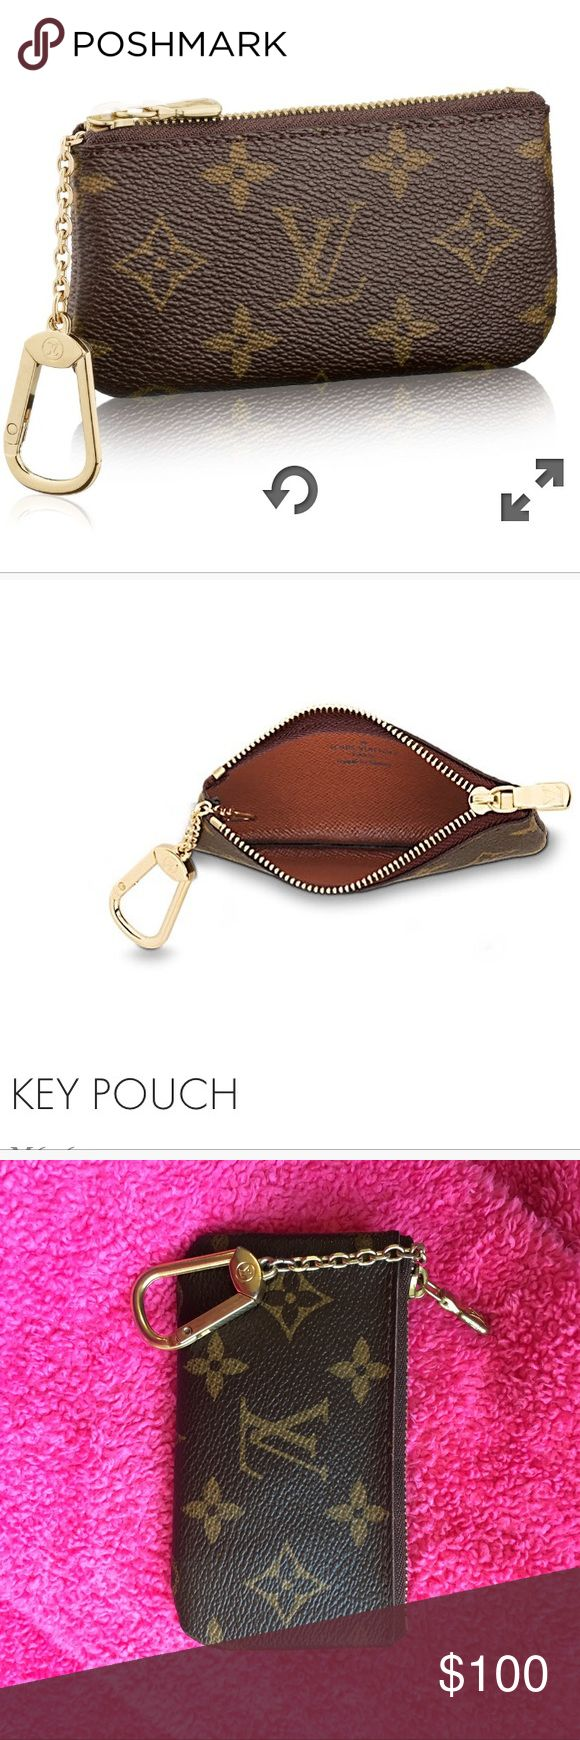 BEST OFFER Louis Vuitton Key Pouch coin purse Authentic Louis Vuitton Key Pouch! Perfect for holding your ID and cards or cash. The leather is in perfect condition, but the hardwear is showing some signs of wear. Purchased for $200. Louis Vuitton Bags Wallets